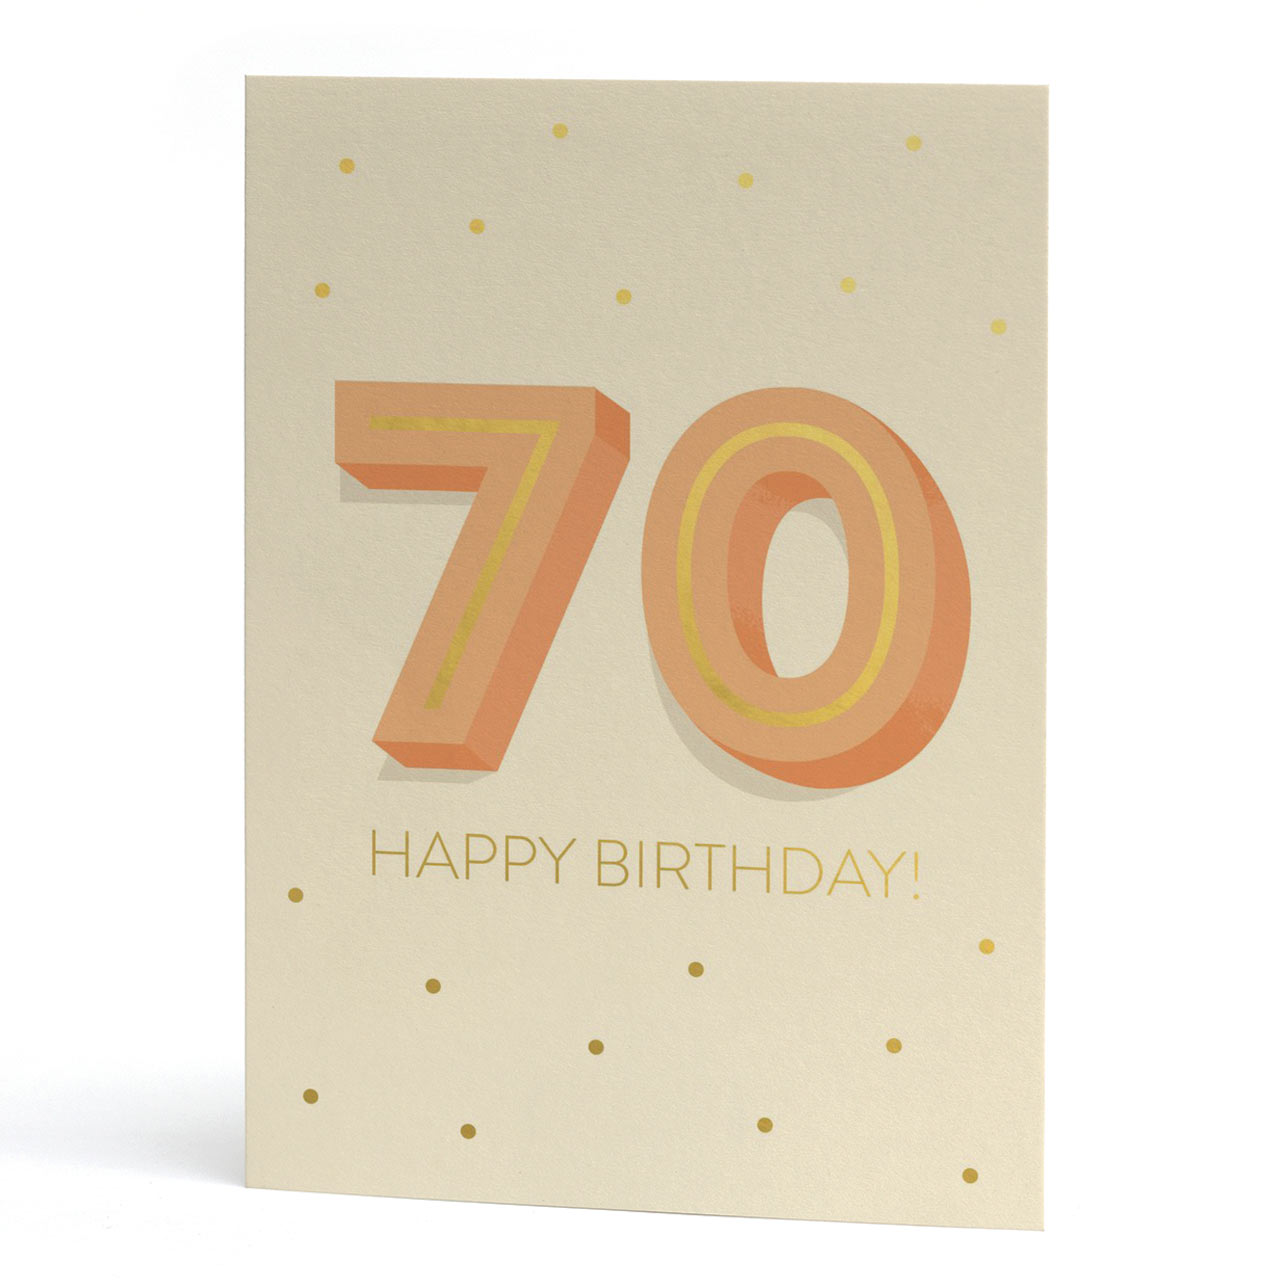 Big 70th Birthday Gold Foil Greeting Card